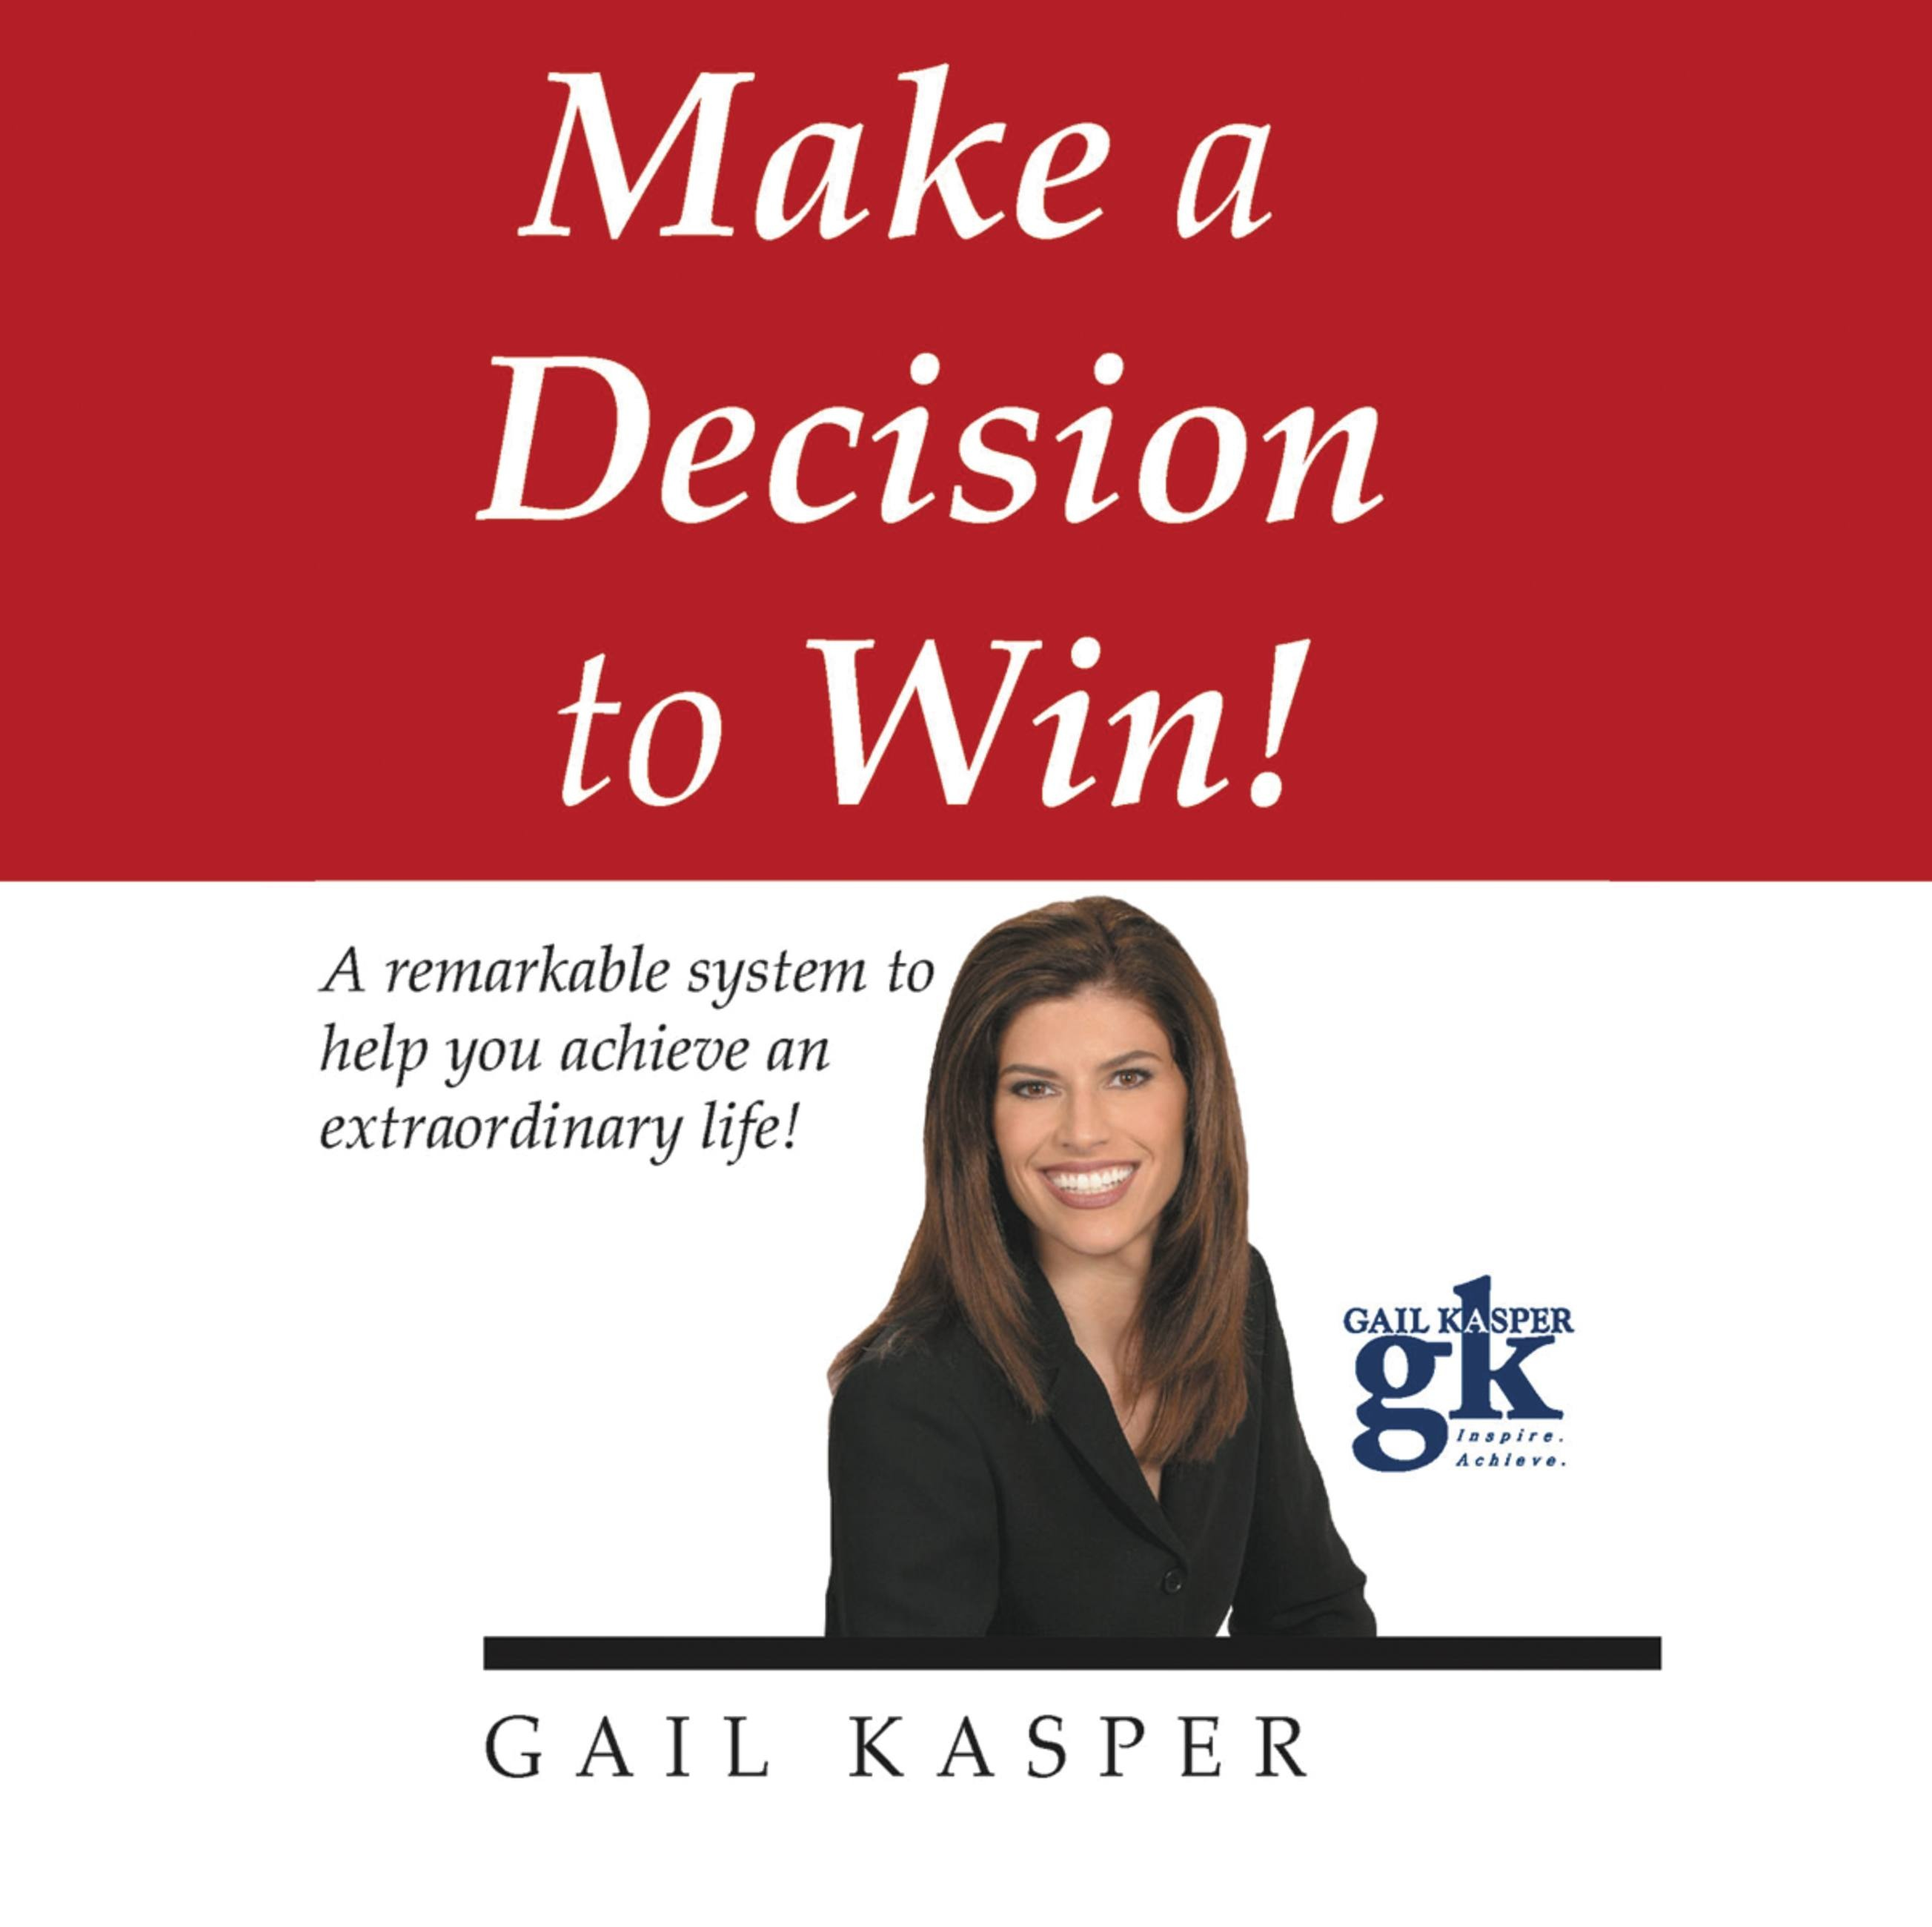 Make a Decision to Win